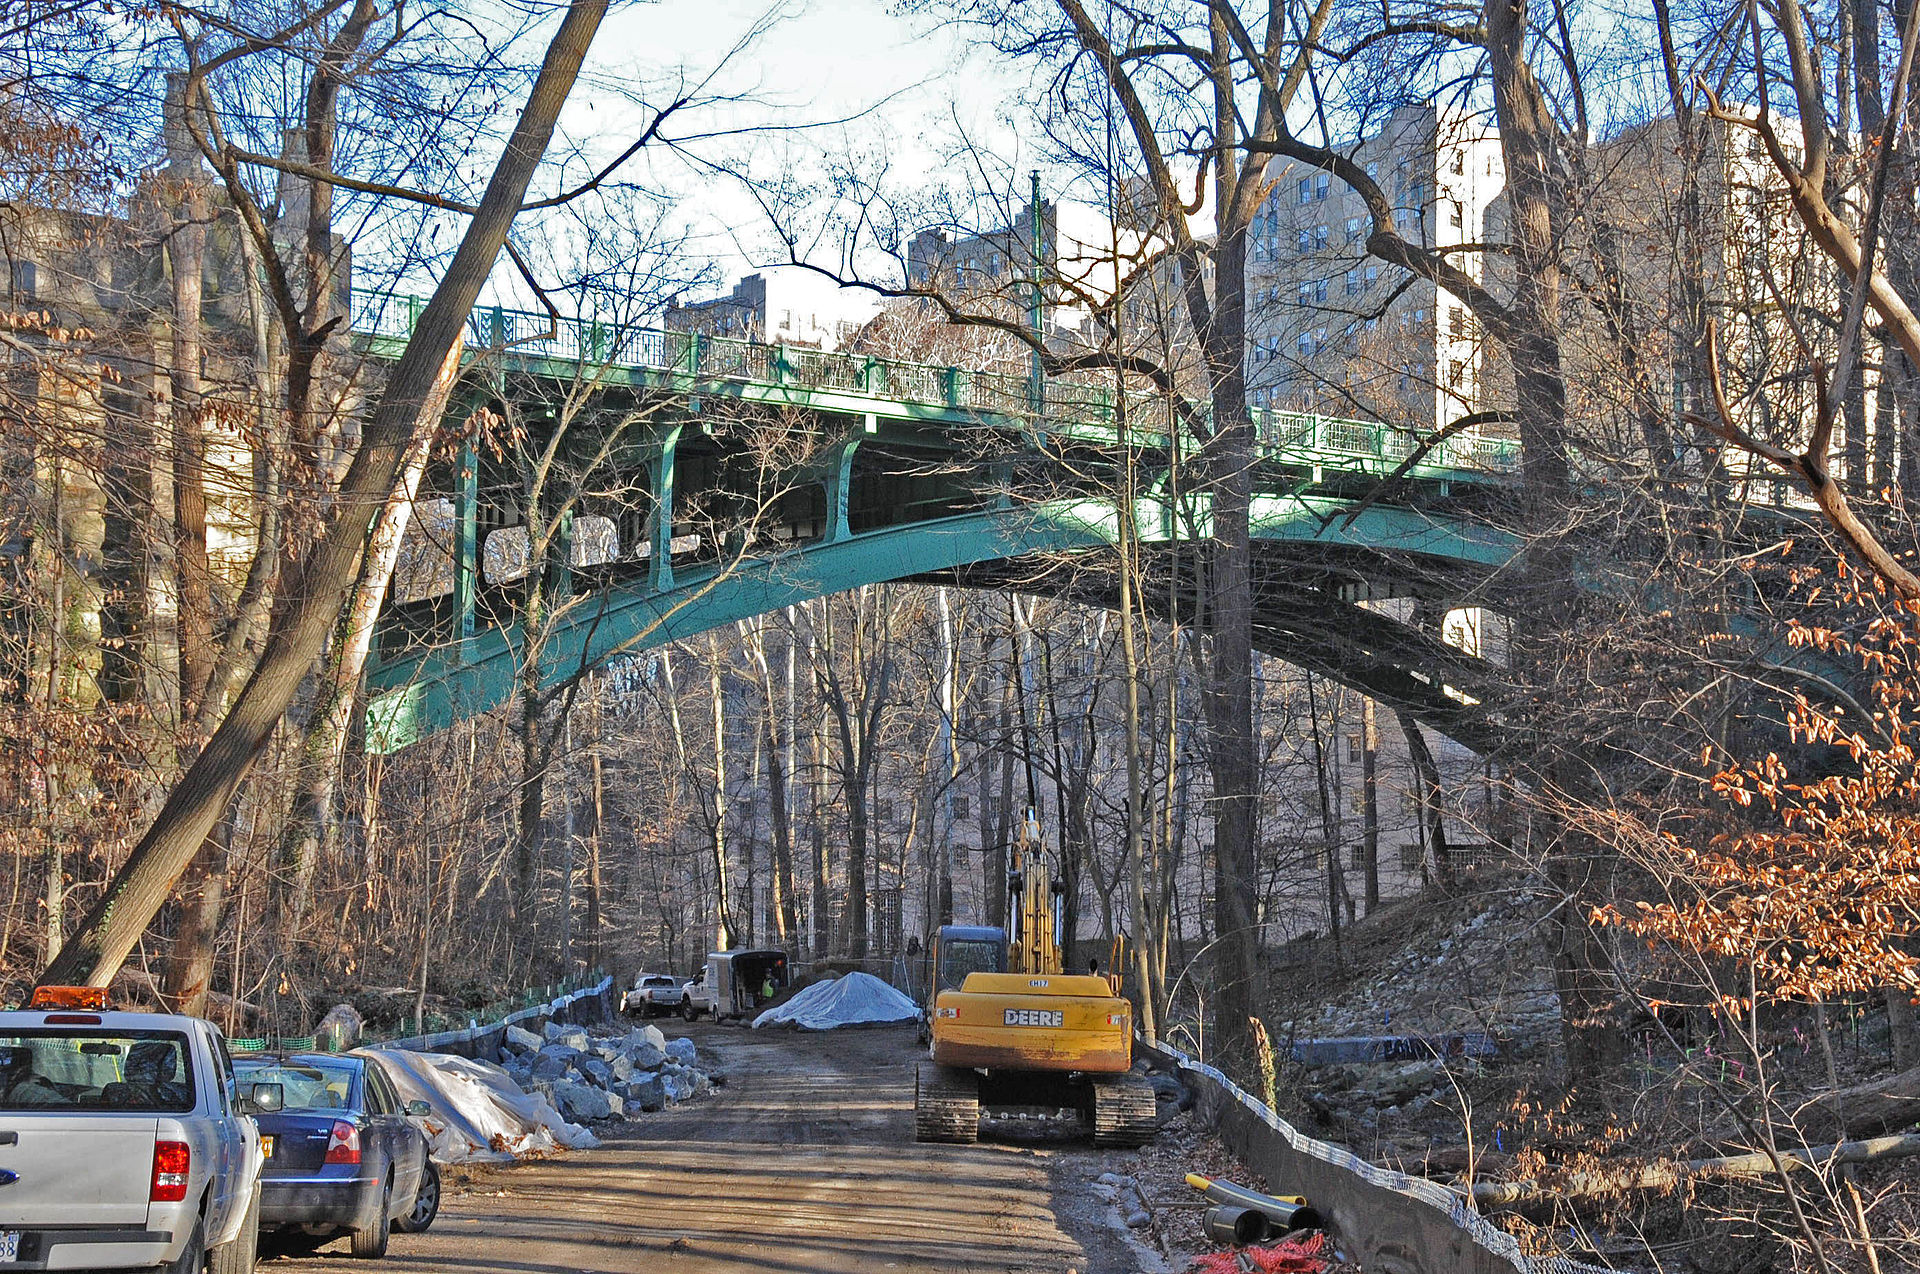 View of the Klingle Valley Bridge from below in the midst of the Klingle Valley Trail construction project. Photo by Dana Jerrye and Roy Klotz, Wikimedia.